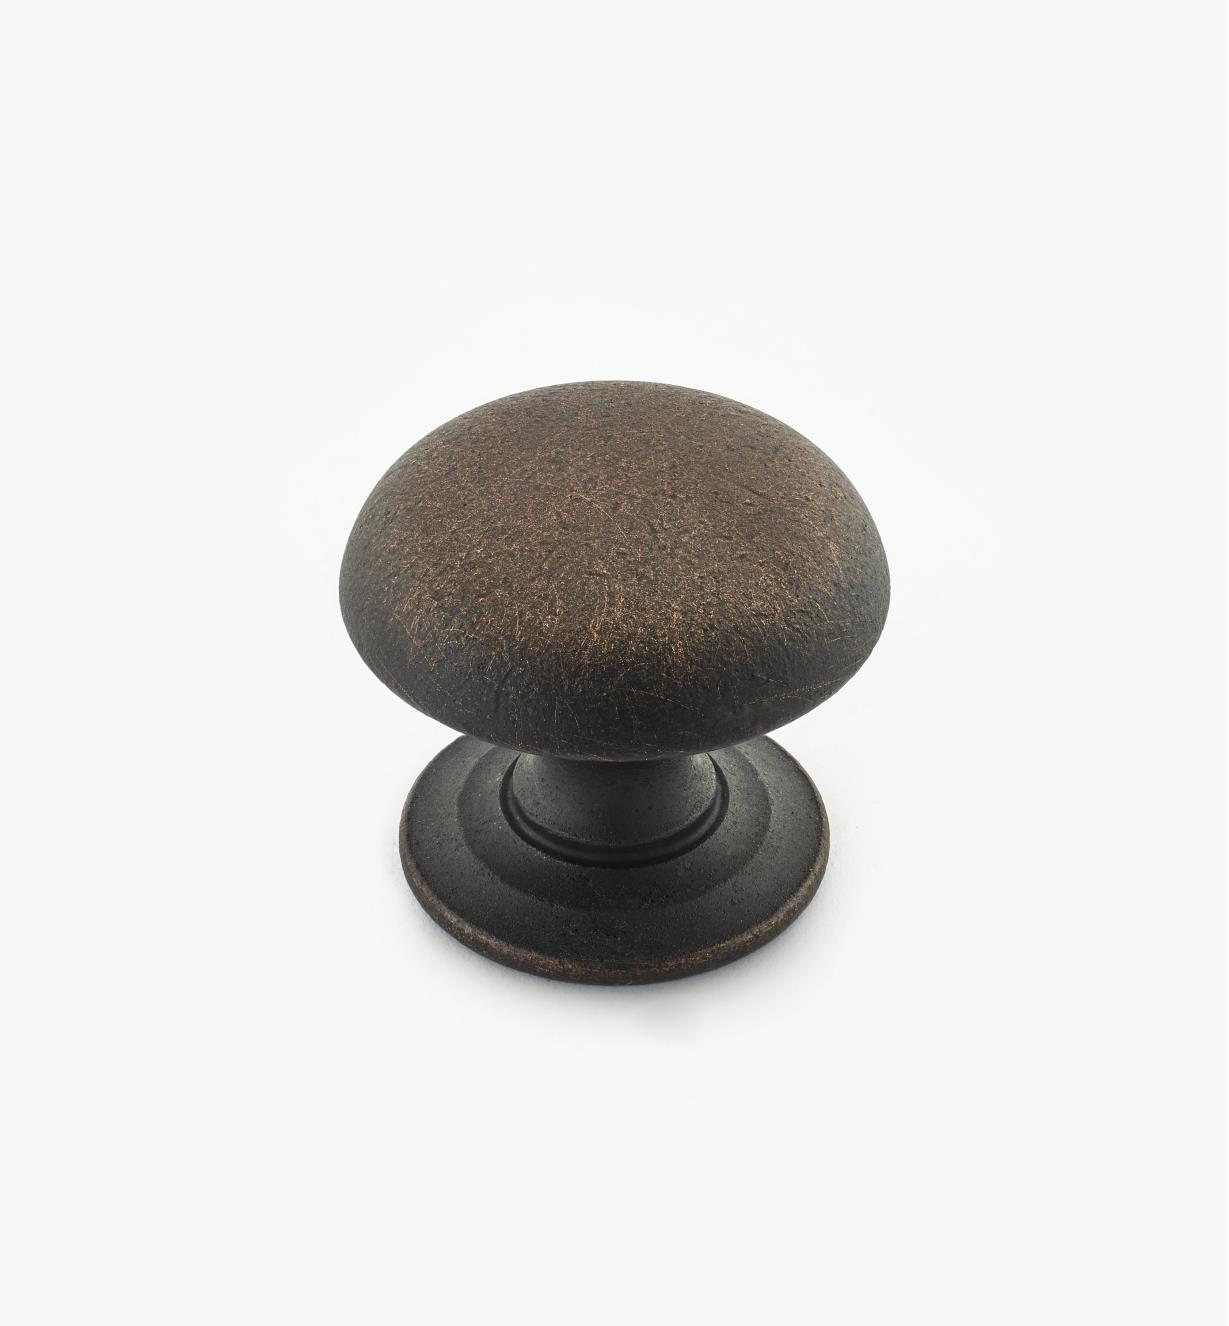 "02W3268 - Weathered Bronze Suite - 1 1/4"" x 1 1/16"" Turned Brass Dome Knob"